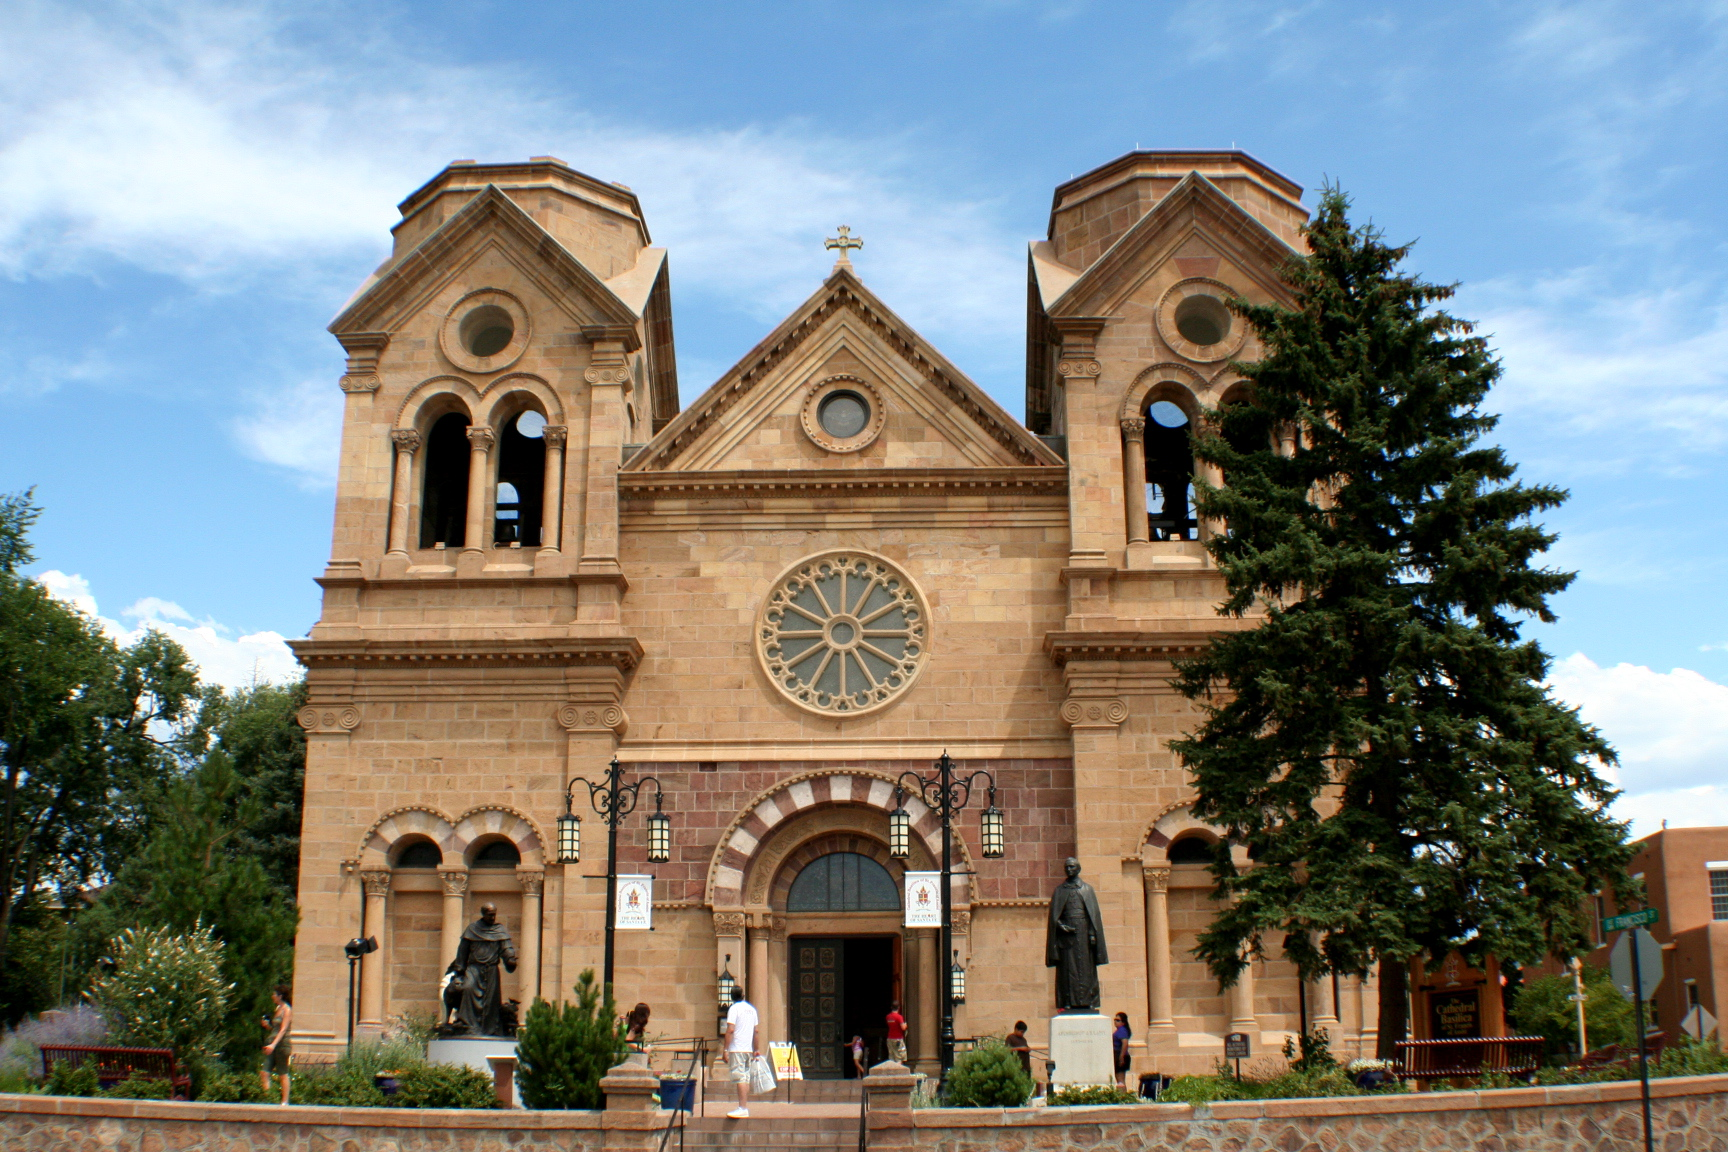 https://upload.wikimedia.org/wikipedia/commons/6/68/Cathedral_of_St._Francis%2C_Santa_Fe%2C_New_Mexico.JPG